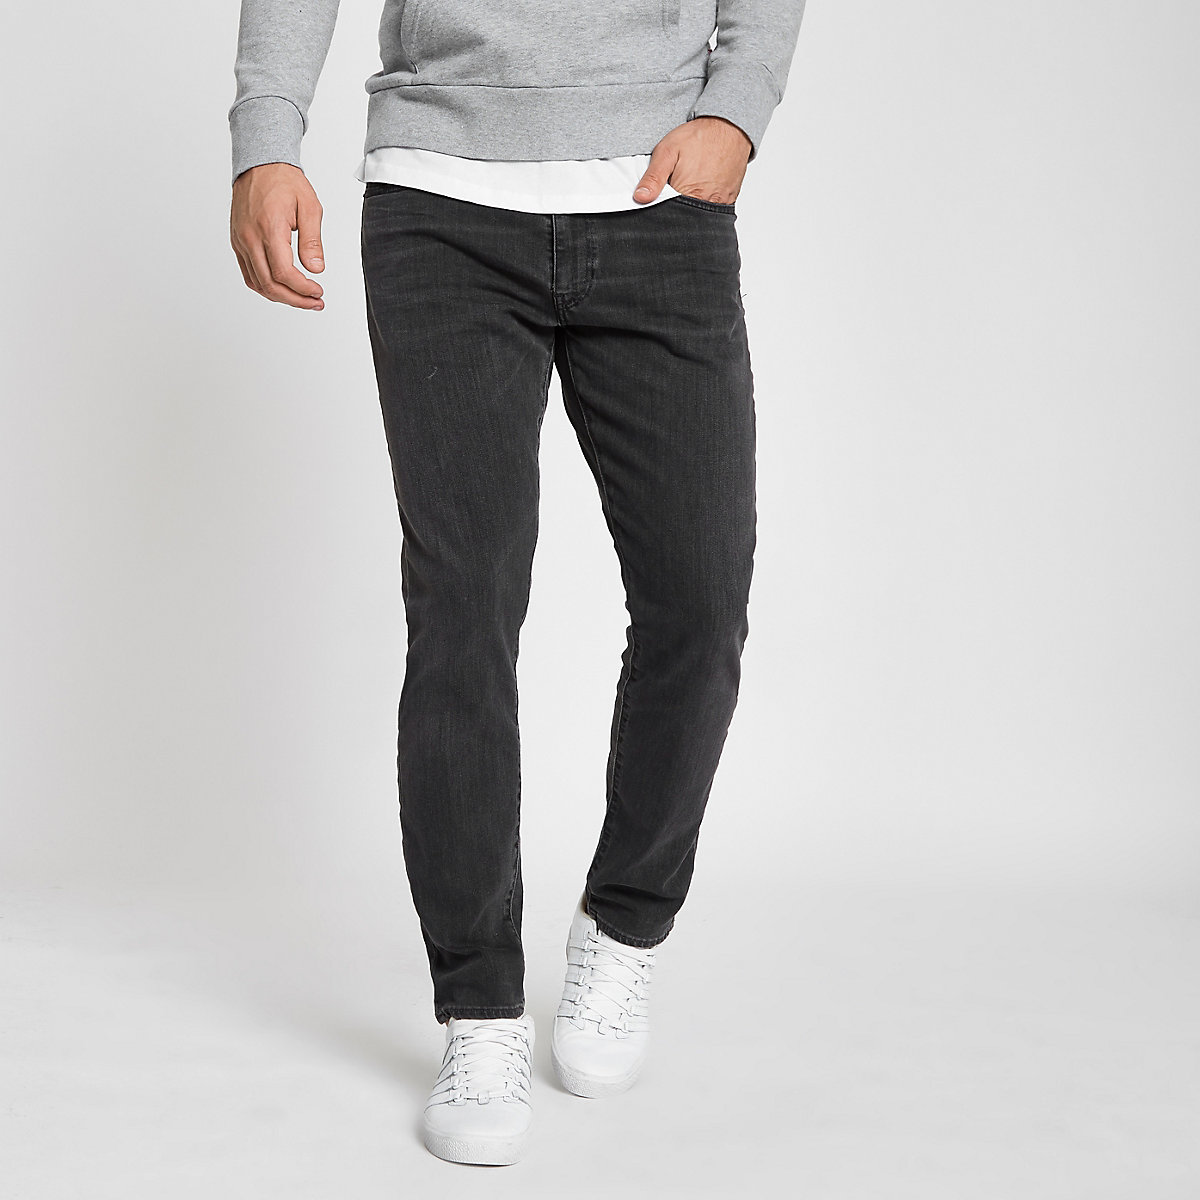 Levi's 512 dark grey slim taper fit jeans